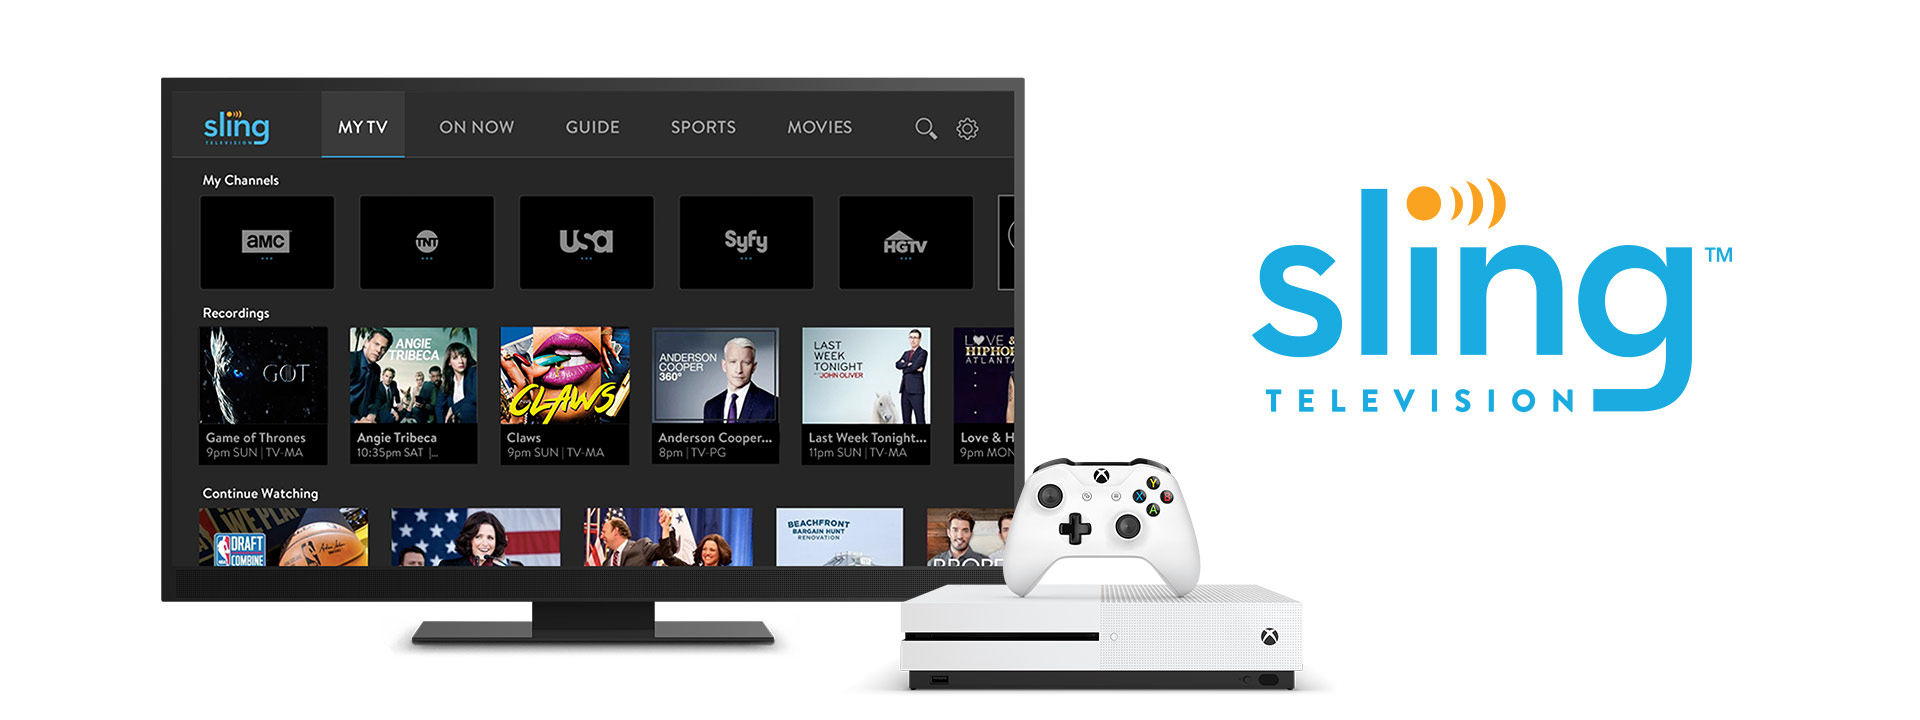 Sling TV on an Xbox One